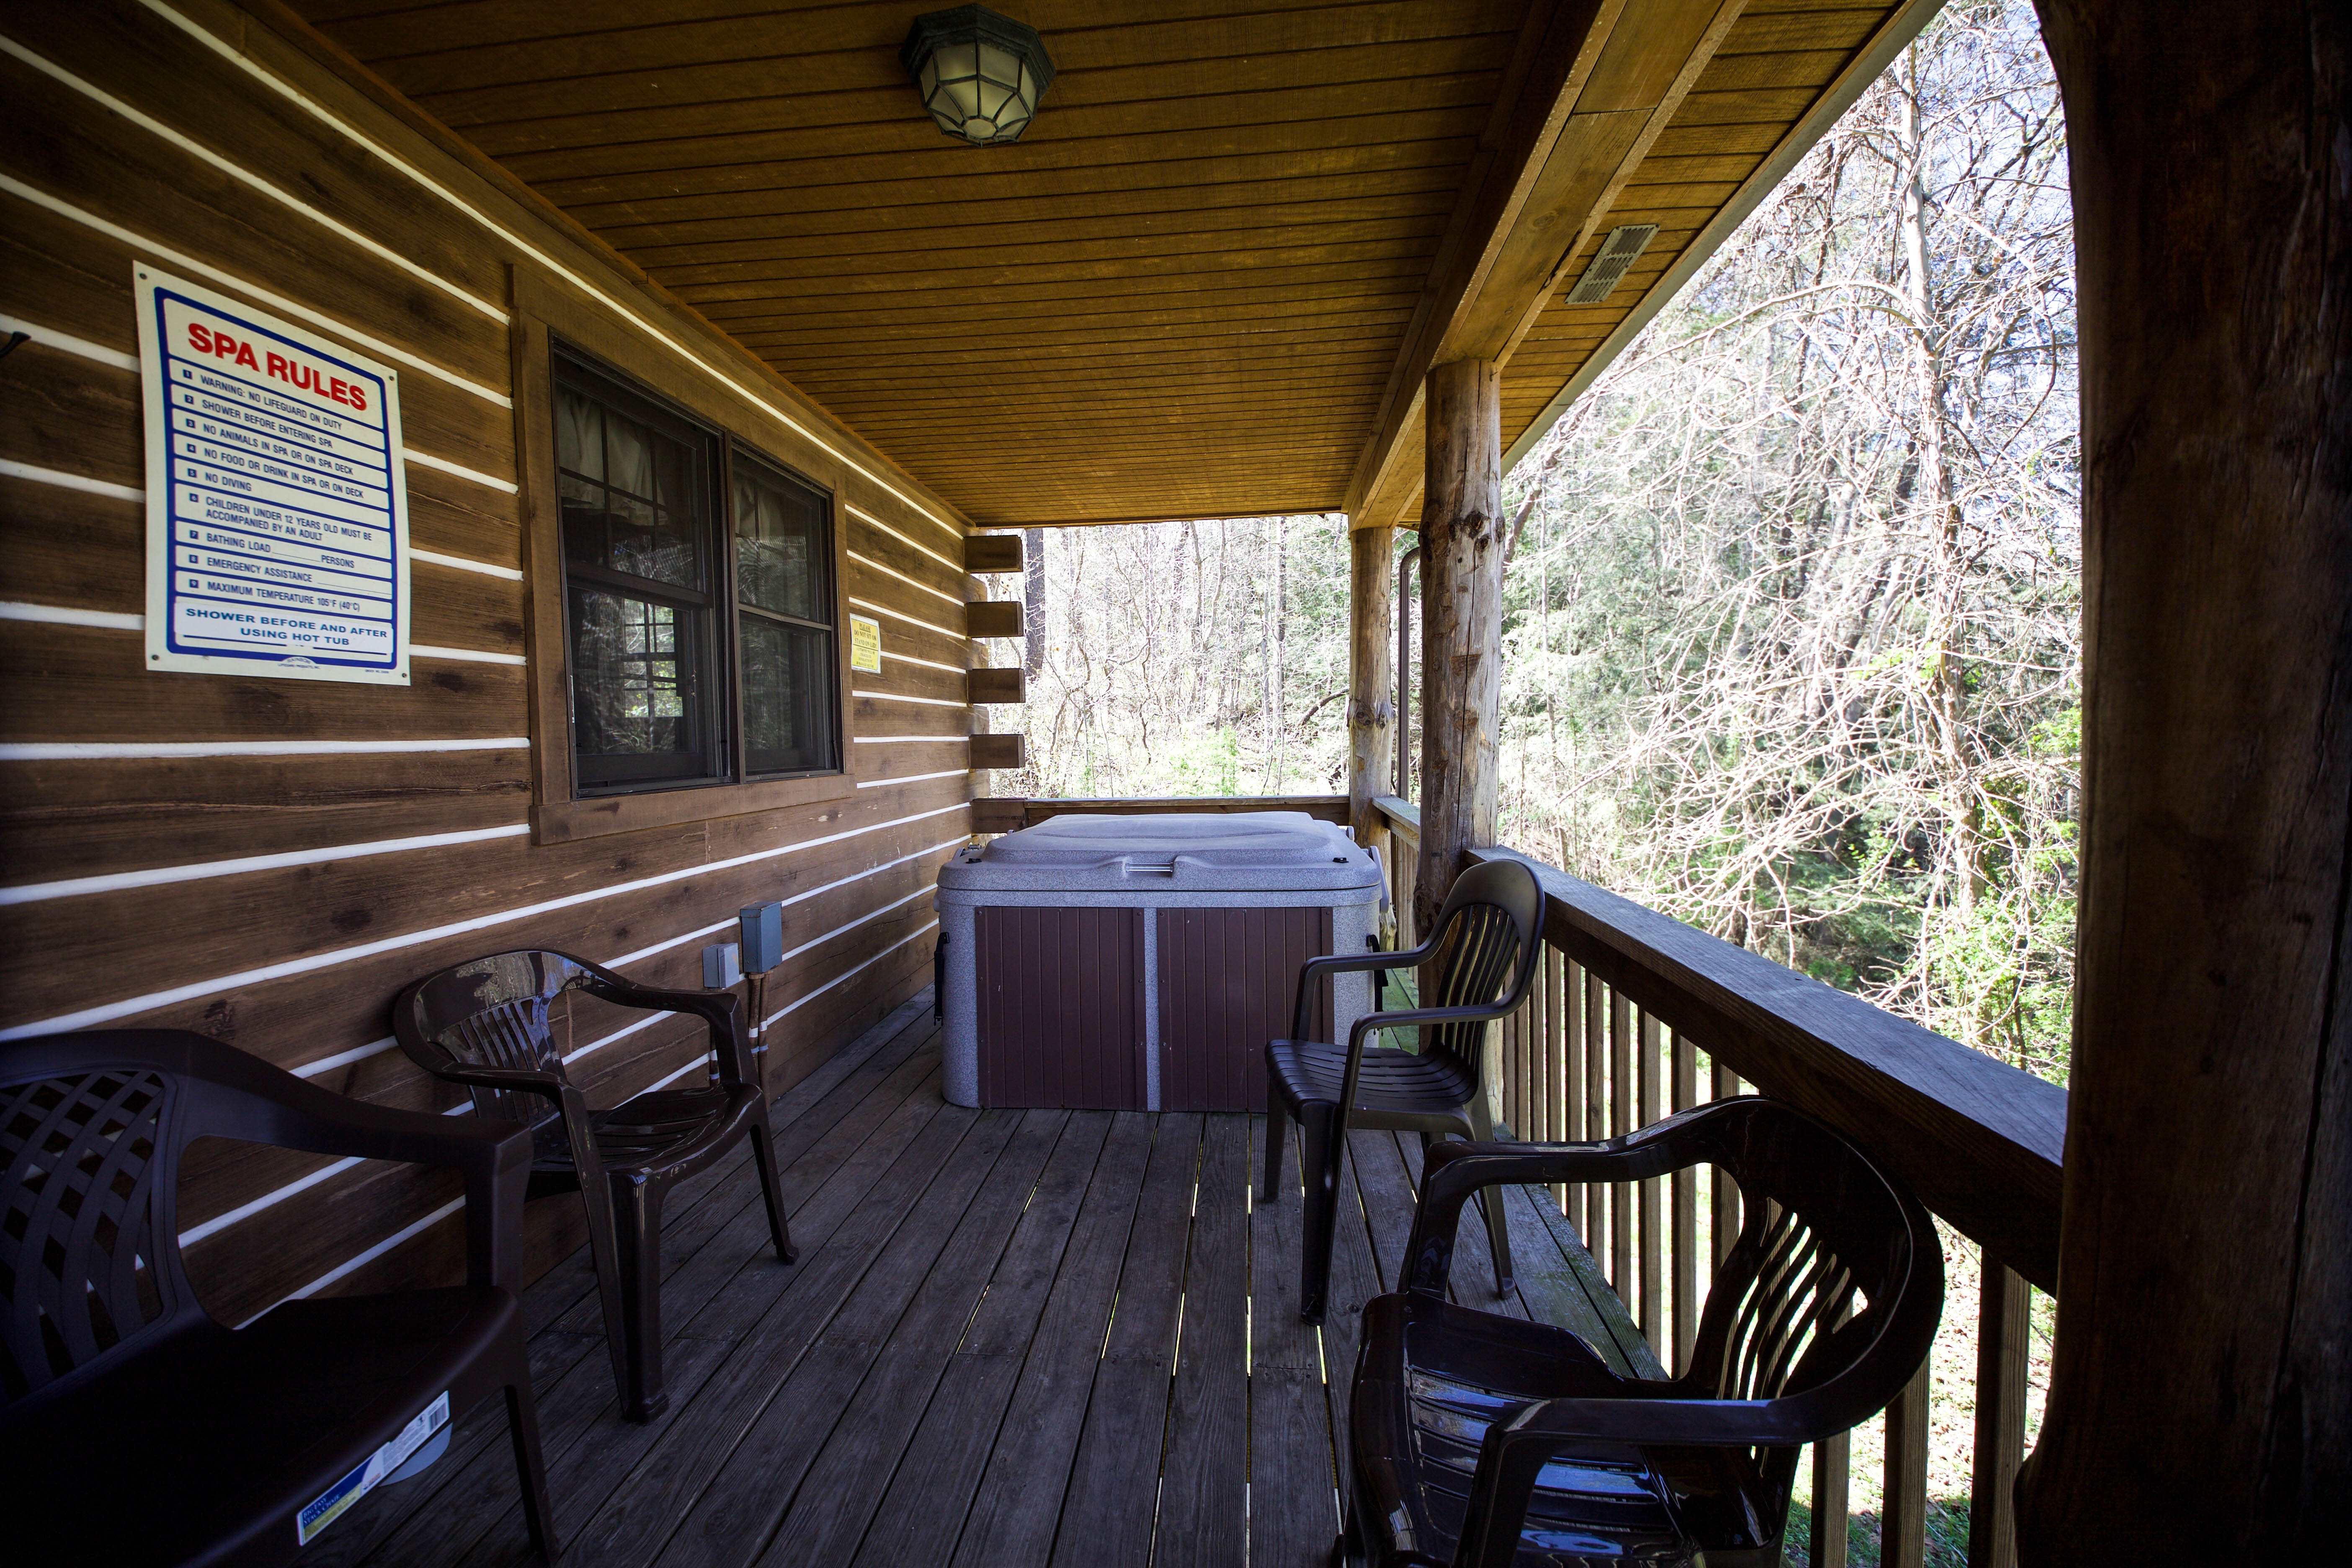 taos hills sale way a lake cabins img hide front hocking for away in reduced and homes price ohio